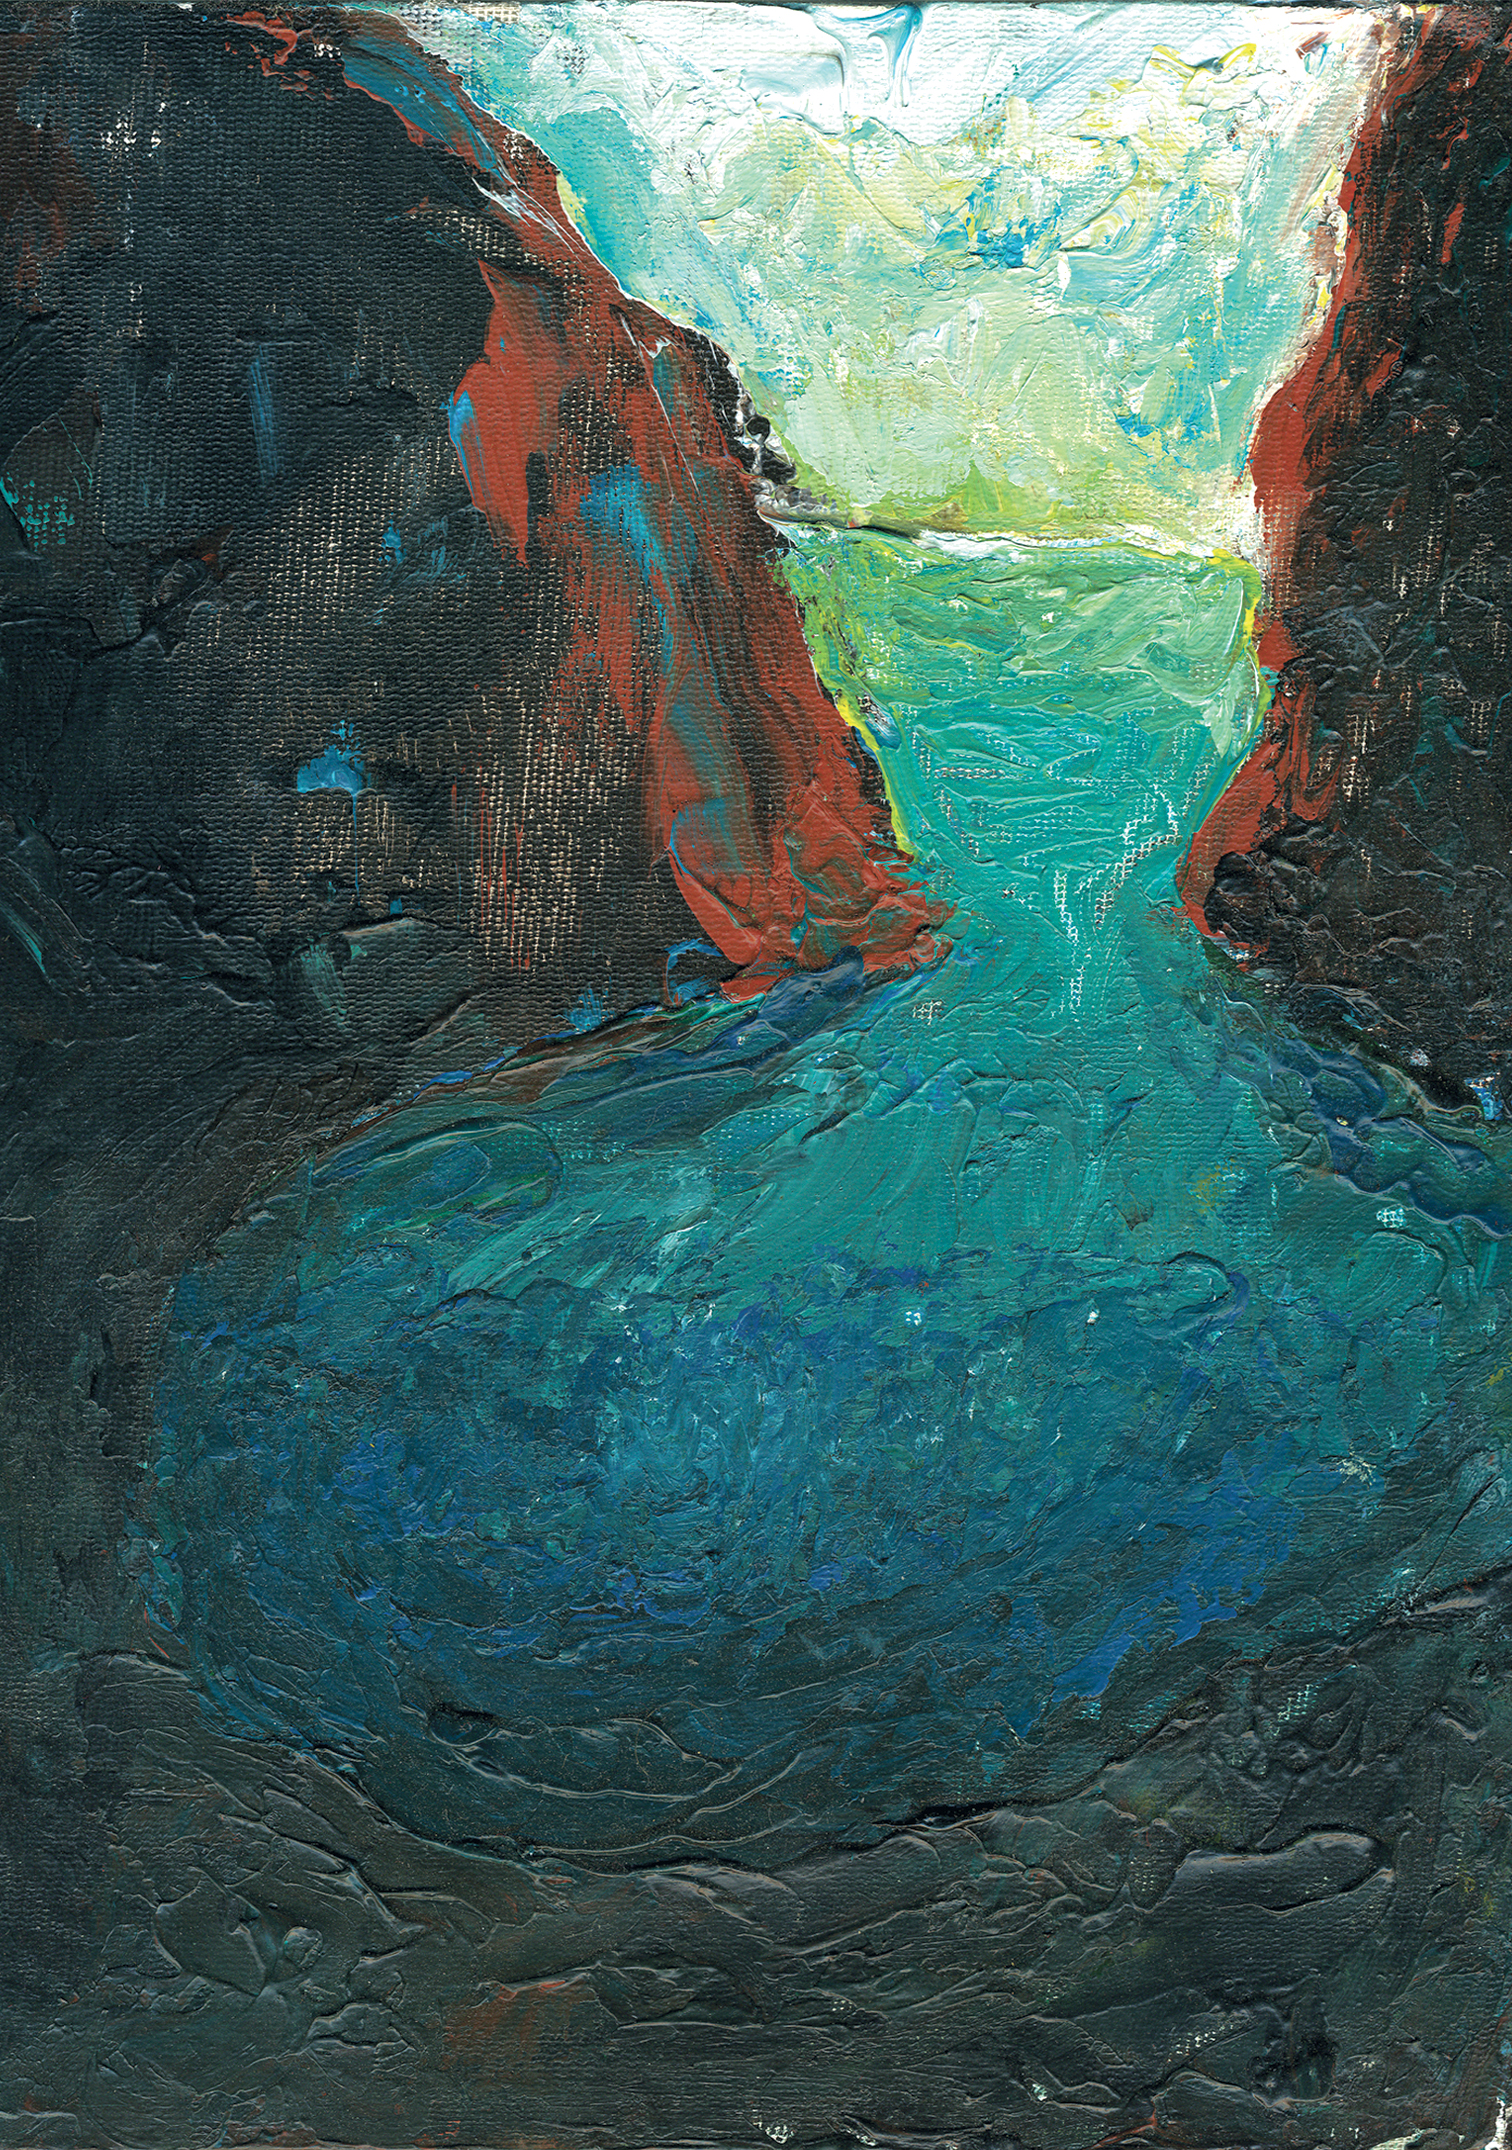 Cove, 2003, Acrylic on canvas board, 20 x 25cm